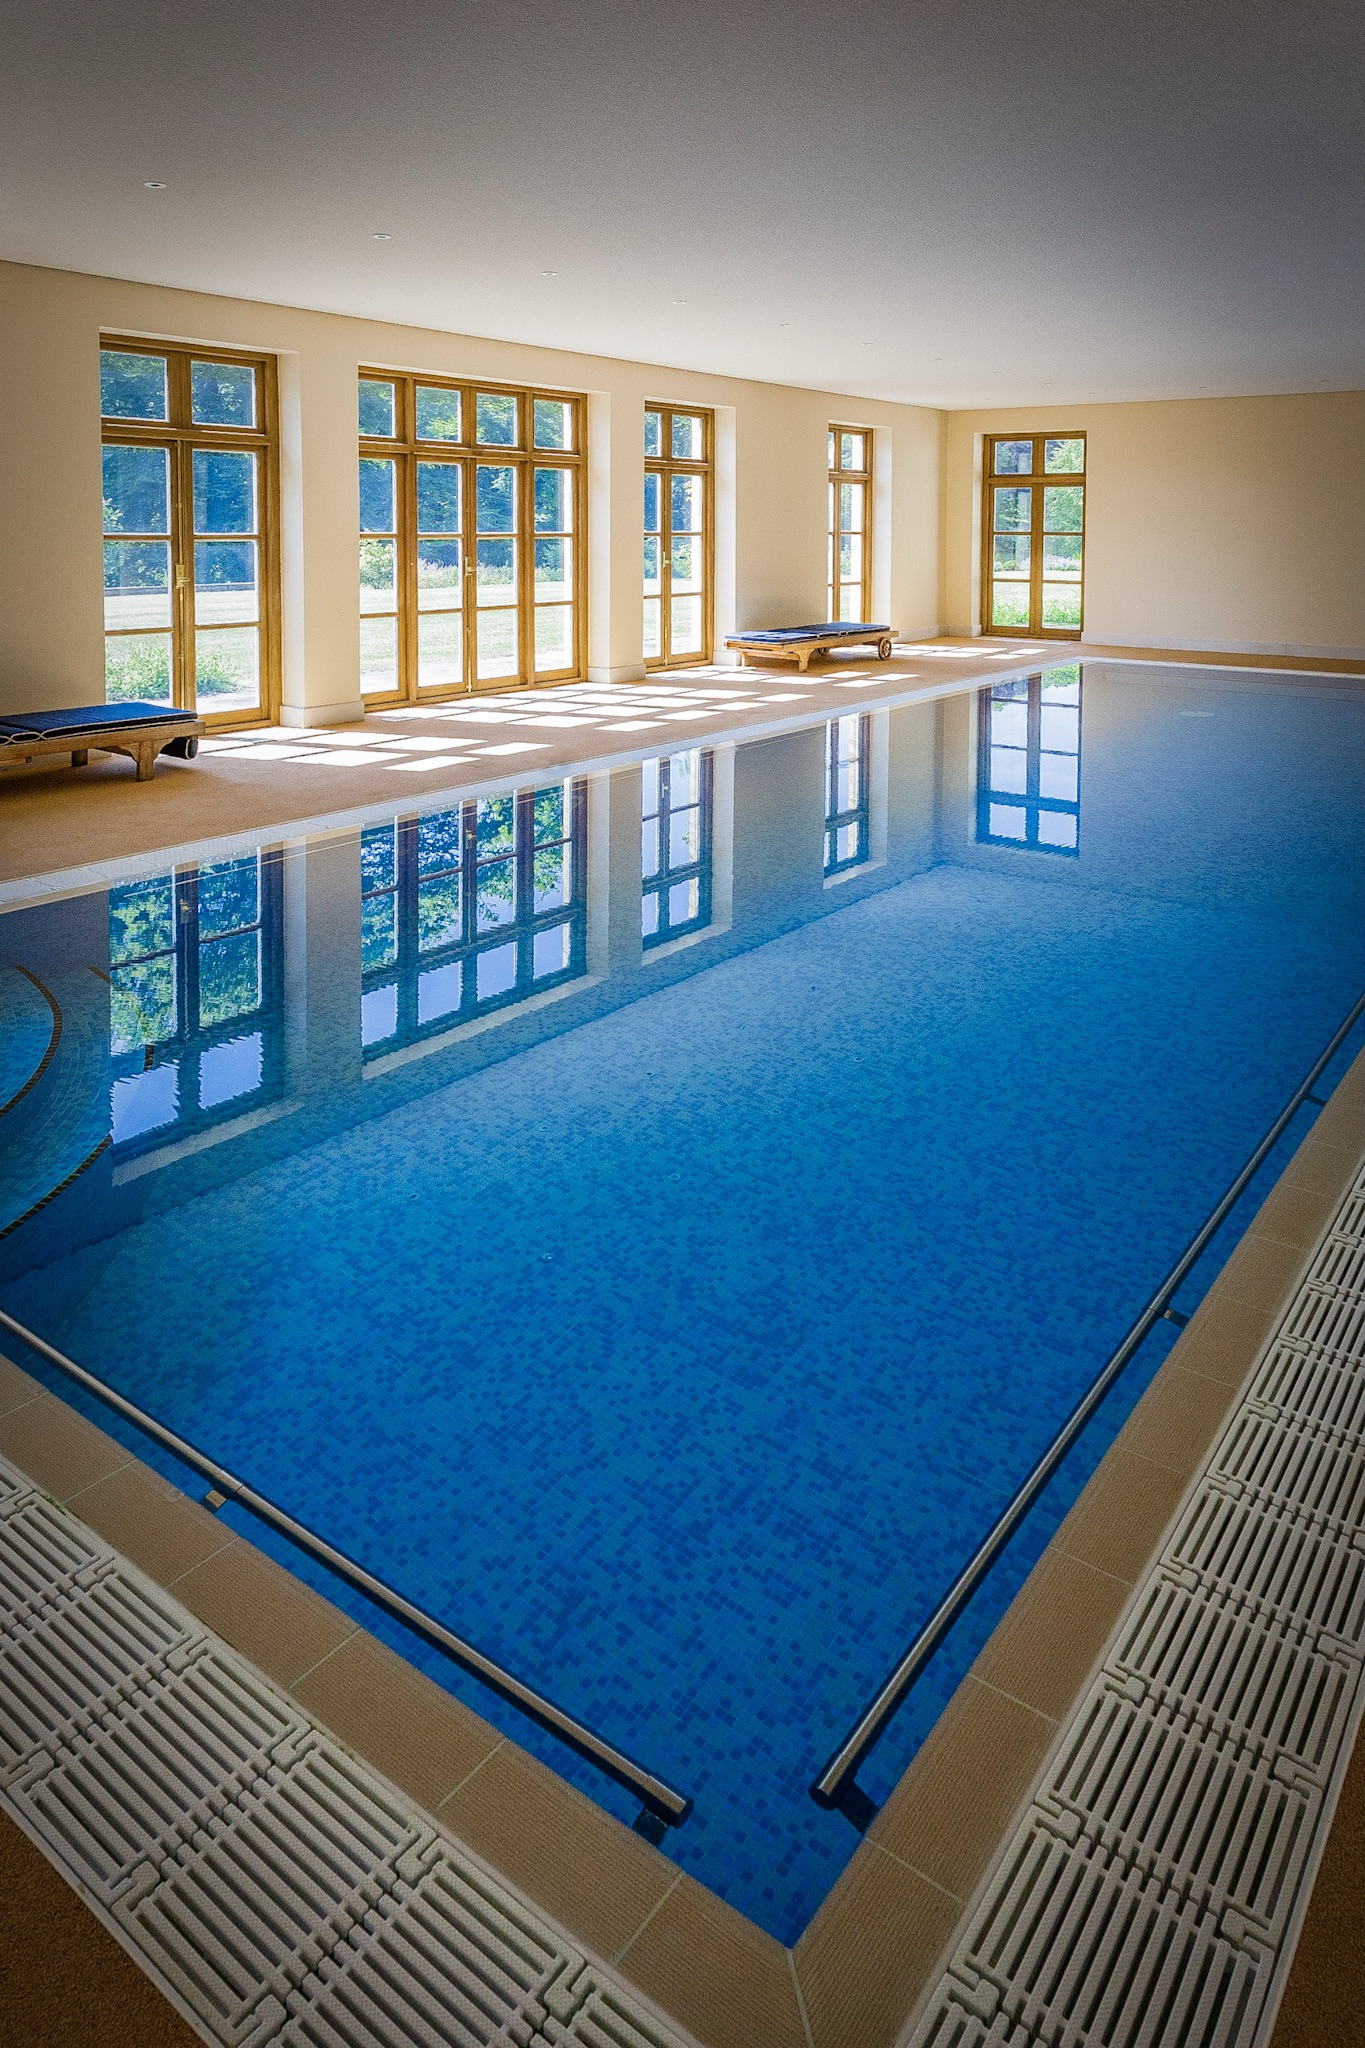 Swimming pool by Rick McEvoy interior photographer in Dorset